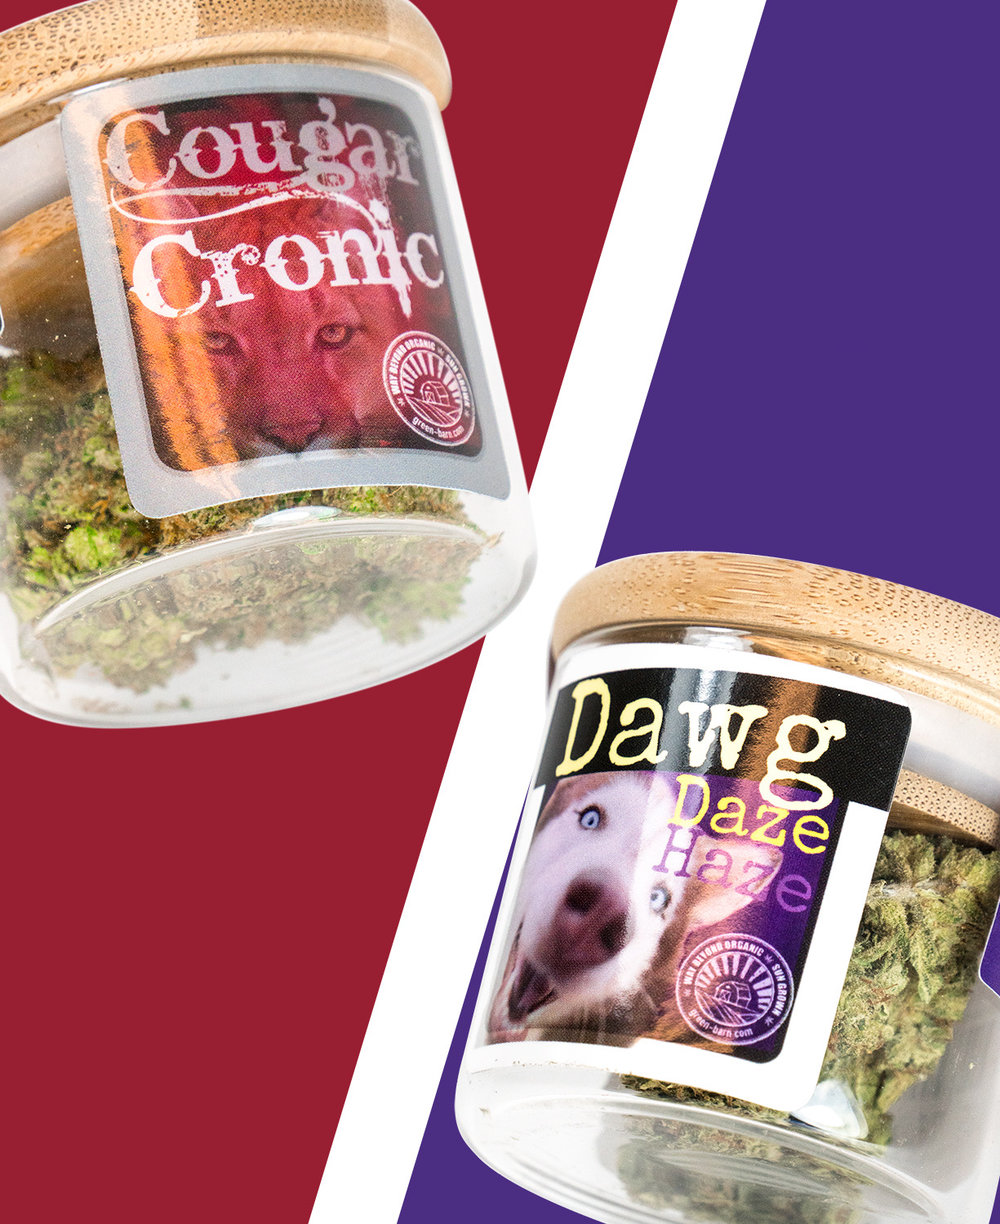 Apple Cup! - While Green Barn Farms is here, we will have 4g for $25 in special apple cup packaging &30% off all flower.10% off Green Barn Farms for the entire week.While Supplies Last